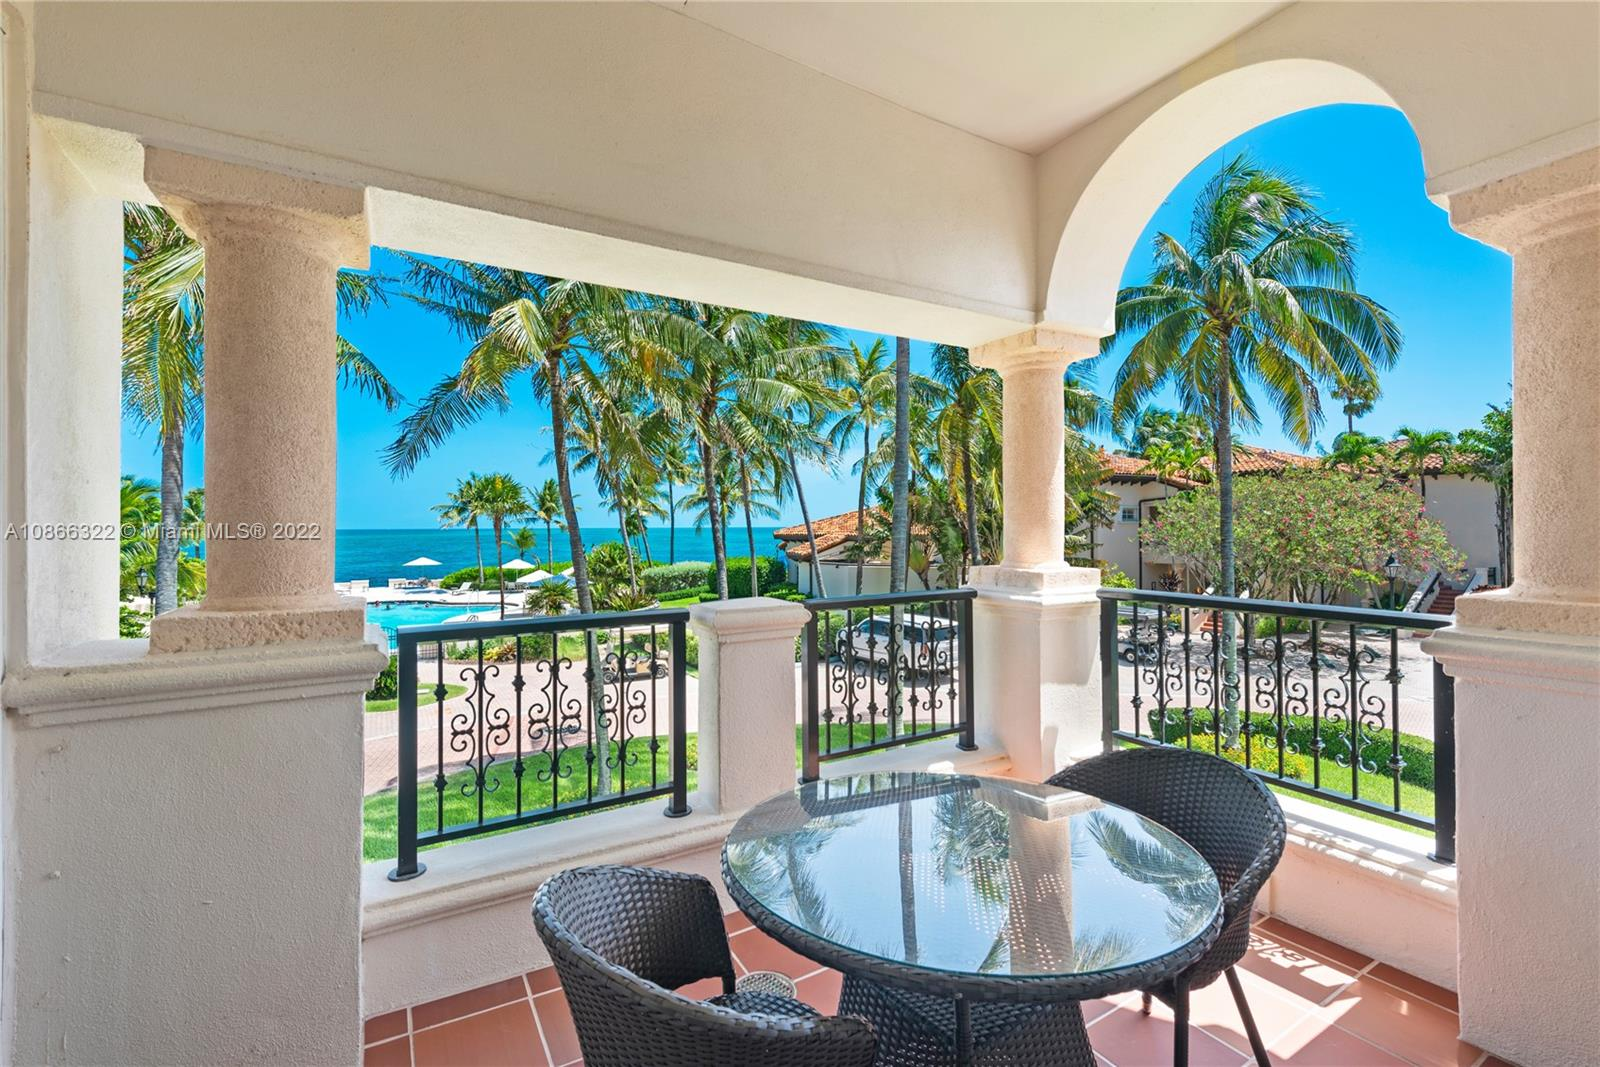 """Experience Fisher Island living at it's finest in this beautifully renovated 3 bedroom, 2 bath Seaside Villa condo on the 2nd floor. The unit is offered fully furnished. Features include: marble and wood floors, impact glass doors and windows, state of the art kitchen and bathrooms and many more.  A perfect """"pie a terre"""" Owners can rent short & long term. Visit this exceptional offering!"""